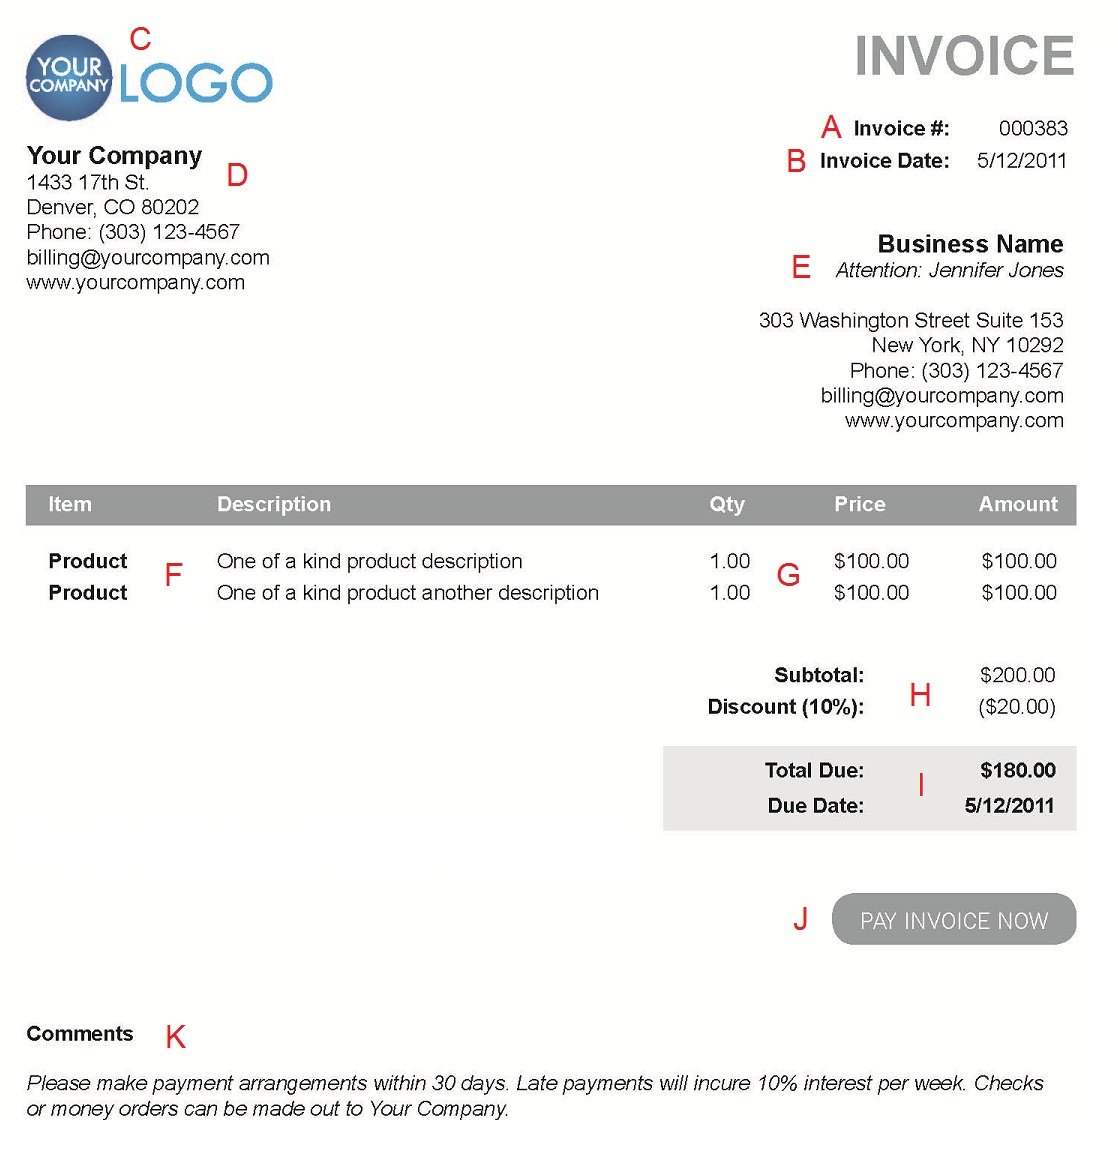 Ebitus  Stunning The  Different Sections Of An Electronic Payment Invoice With Fascinating A  With Agreeable Invoice Payment Terms Example Also Toyota Dealer Invoice In Addition Printable Blank Invoice Template And Canadian Customs Invoice Instructions As Well As Make Invoice Template Additionally Invoice Apps For Ipad From Paysimplecom With Ebitus  Fascinating The  Different Sections Of An Electronic Payment Invoice With Agreeable A  And Stunning Invoice Payment Terms Example Also Toyota Dealer Invoice In Addition Printable Blank Invoice Template From Paysimplecom